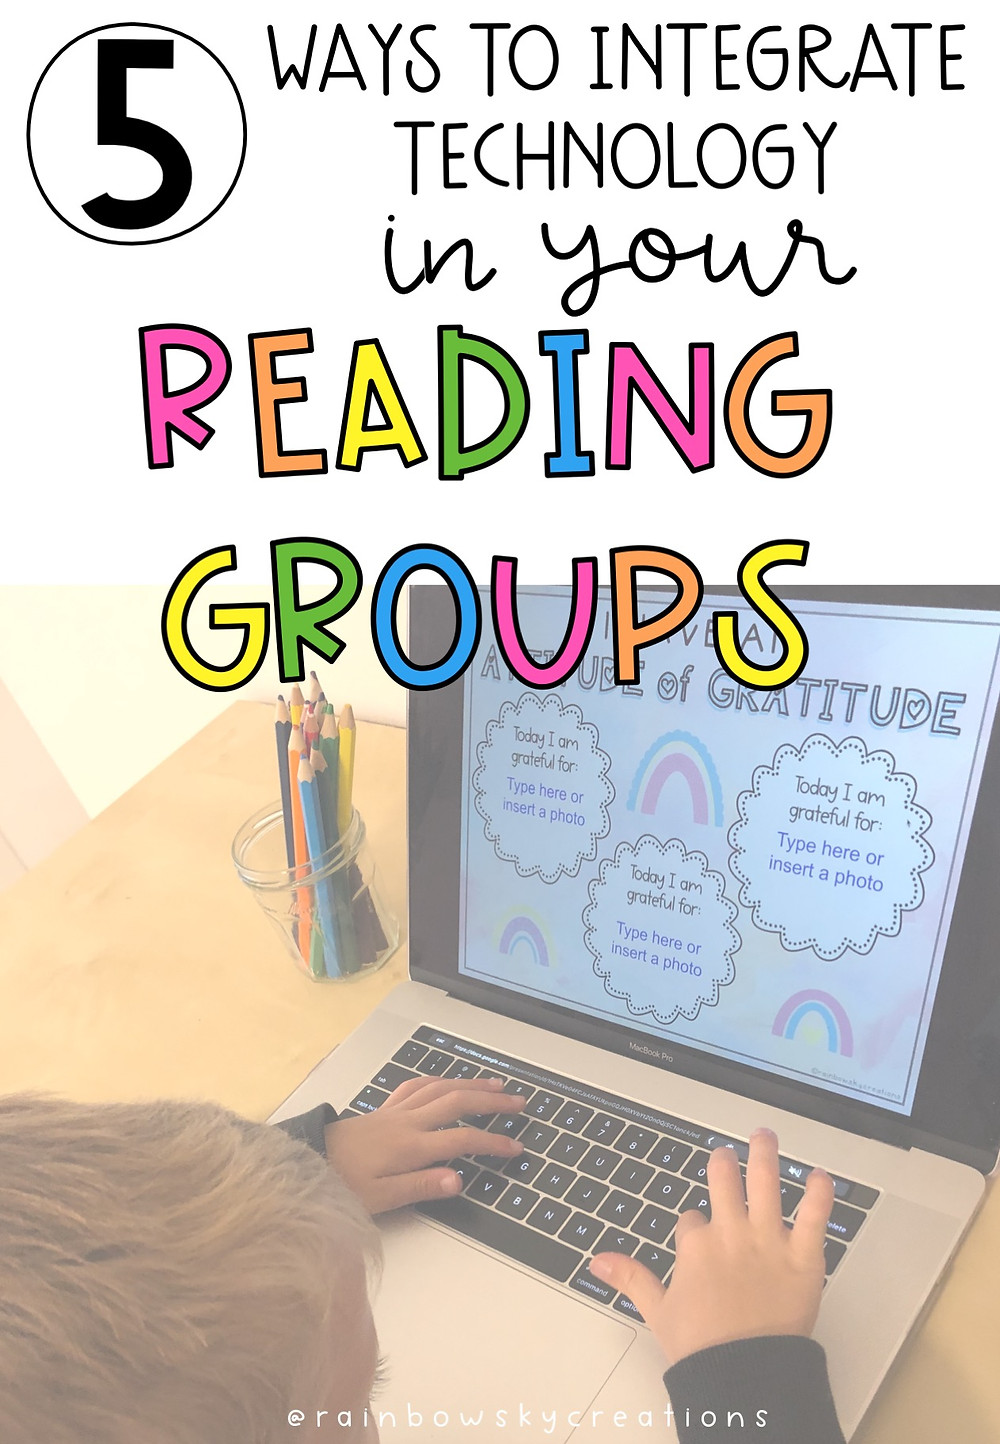 5-ways-to-integrate-technology-in-your-reading-groups